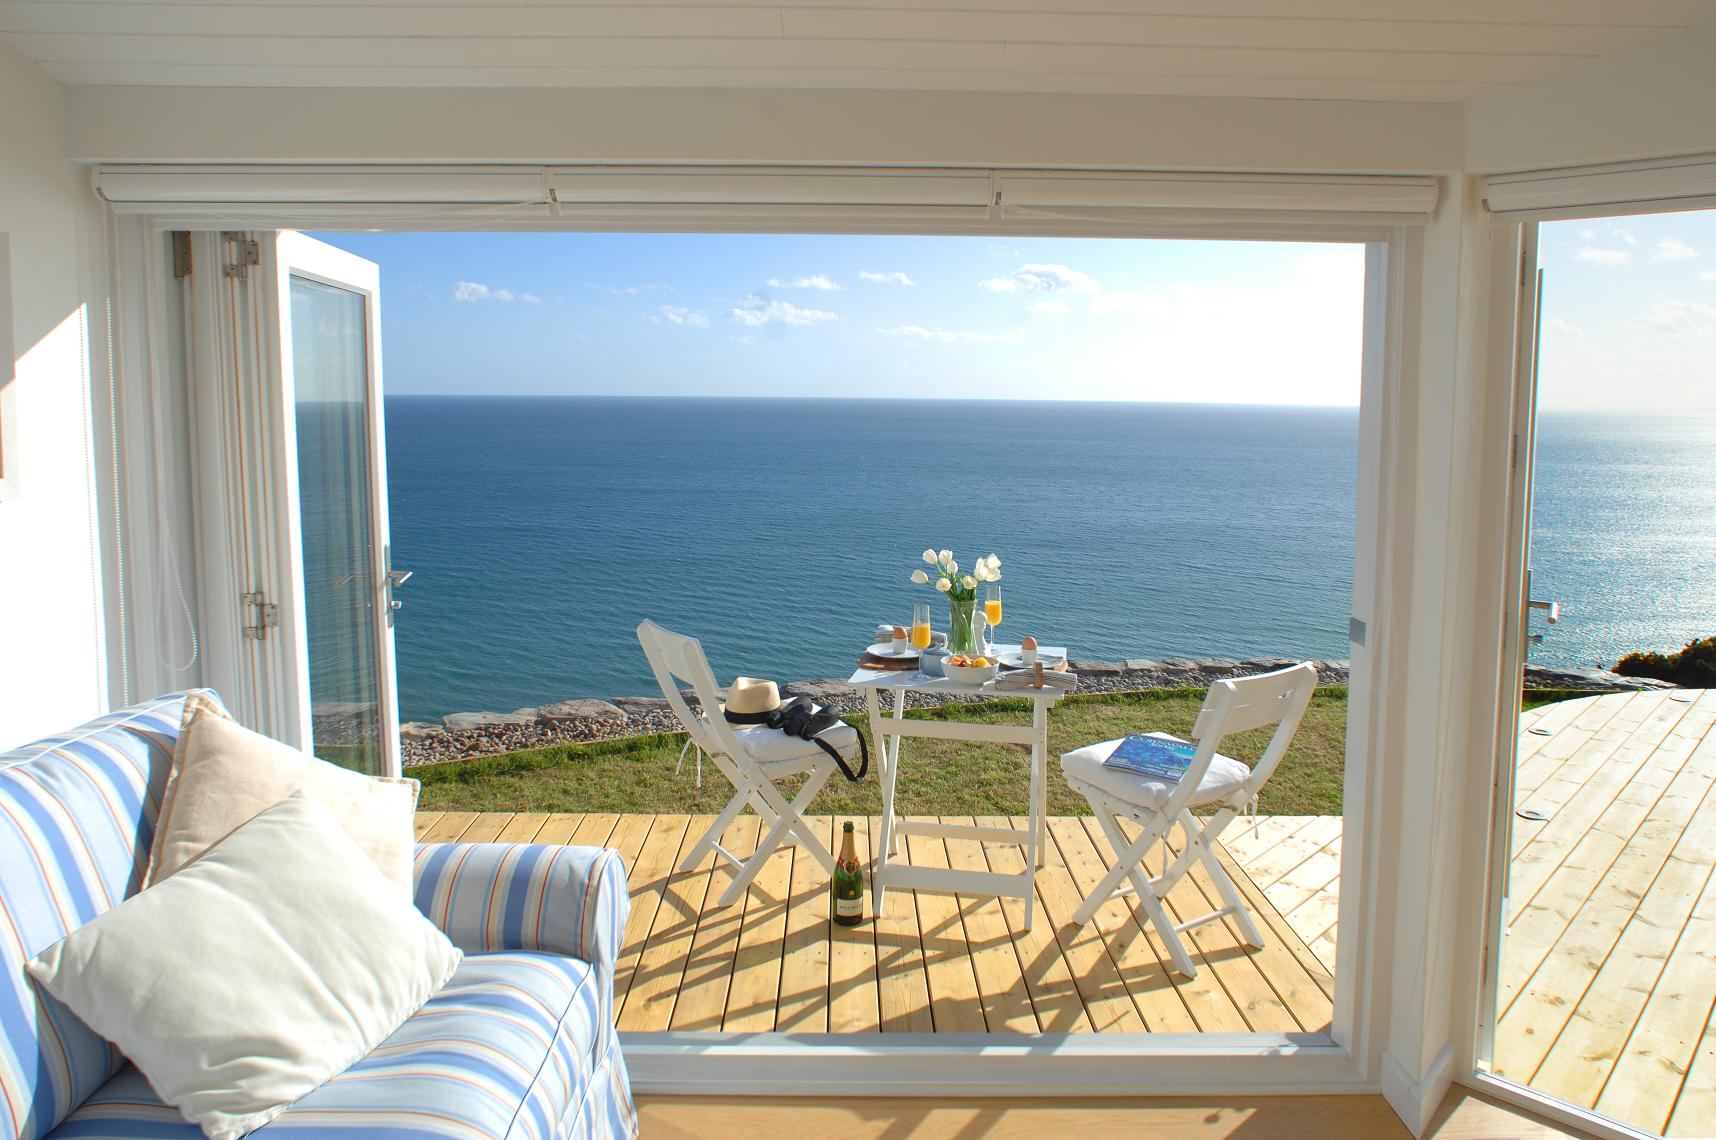 Gallery the edge an idyllic beach cottage in cornwall Small beach homes